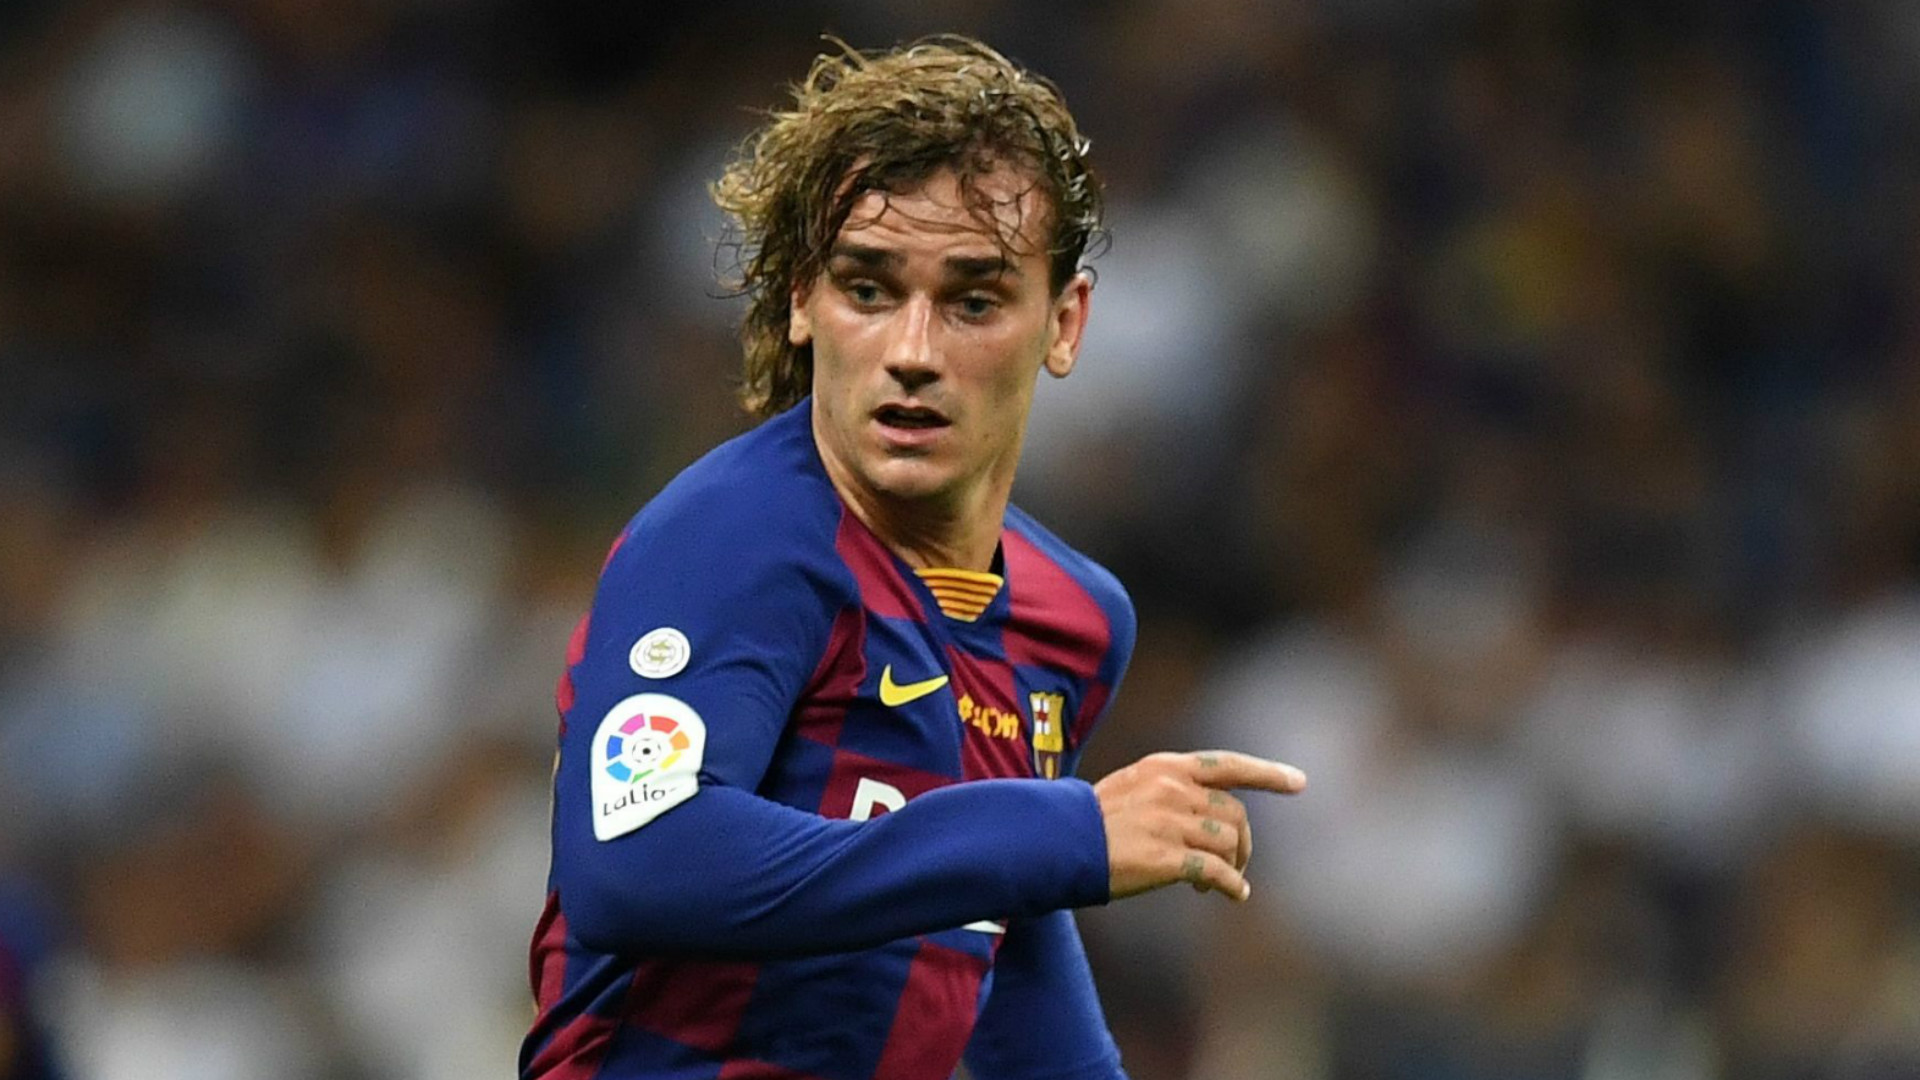 Griezmann's 'bad intentions' excite Barcelona boss Valverde